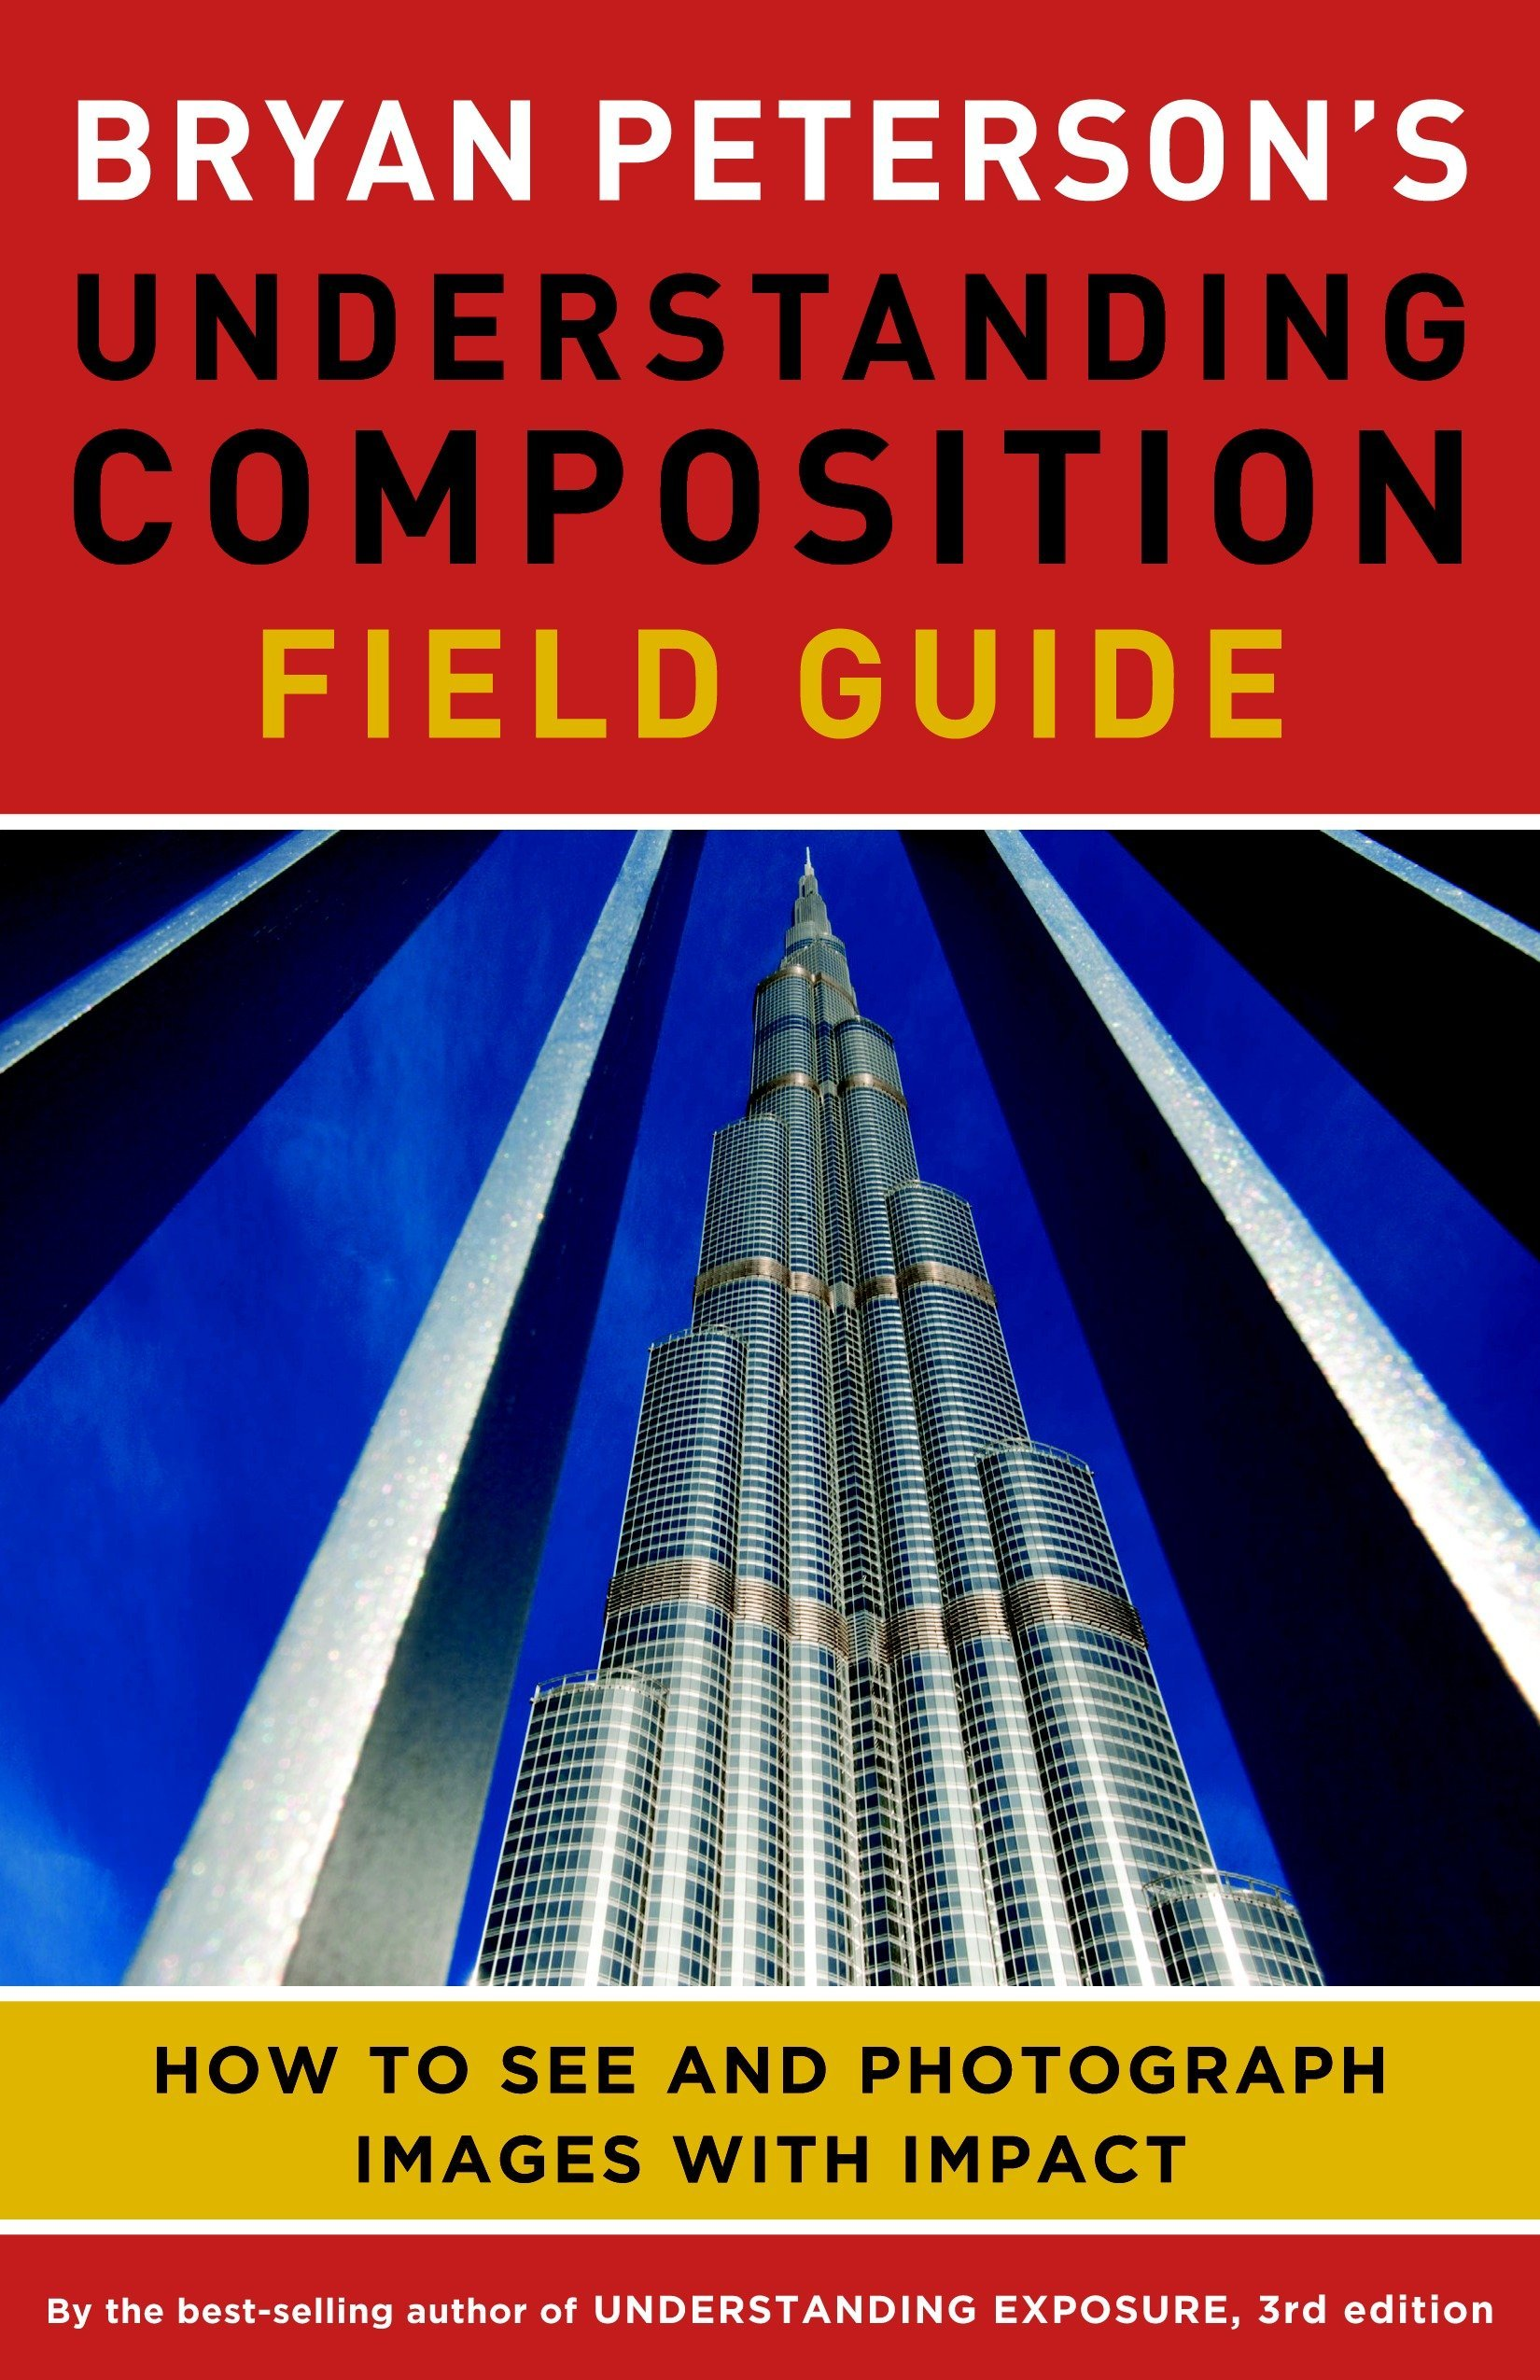 Bryan Peterson's Understanding Composition Field Guide: How to See and Photograph Images with Impact PDF ePub fb2 book